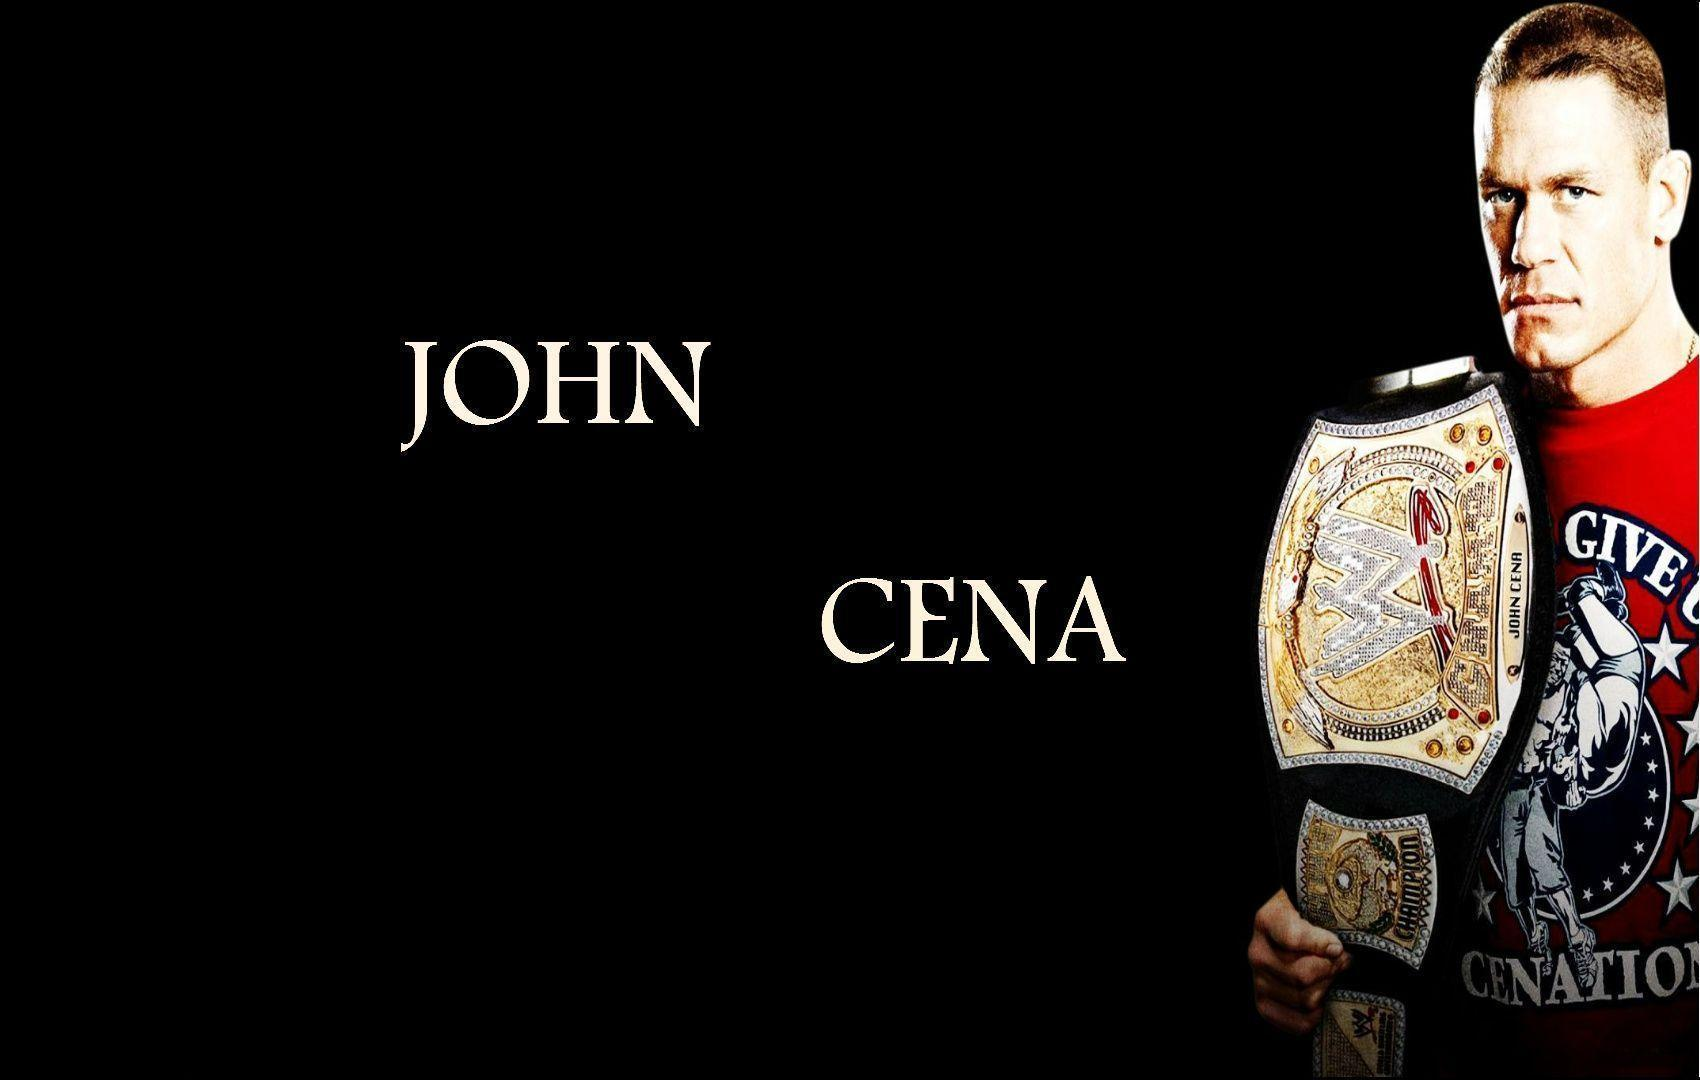 Johncena HD Wallpapers 2016 1700x1080